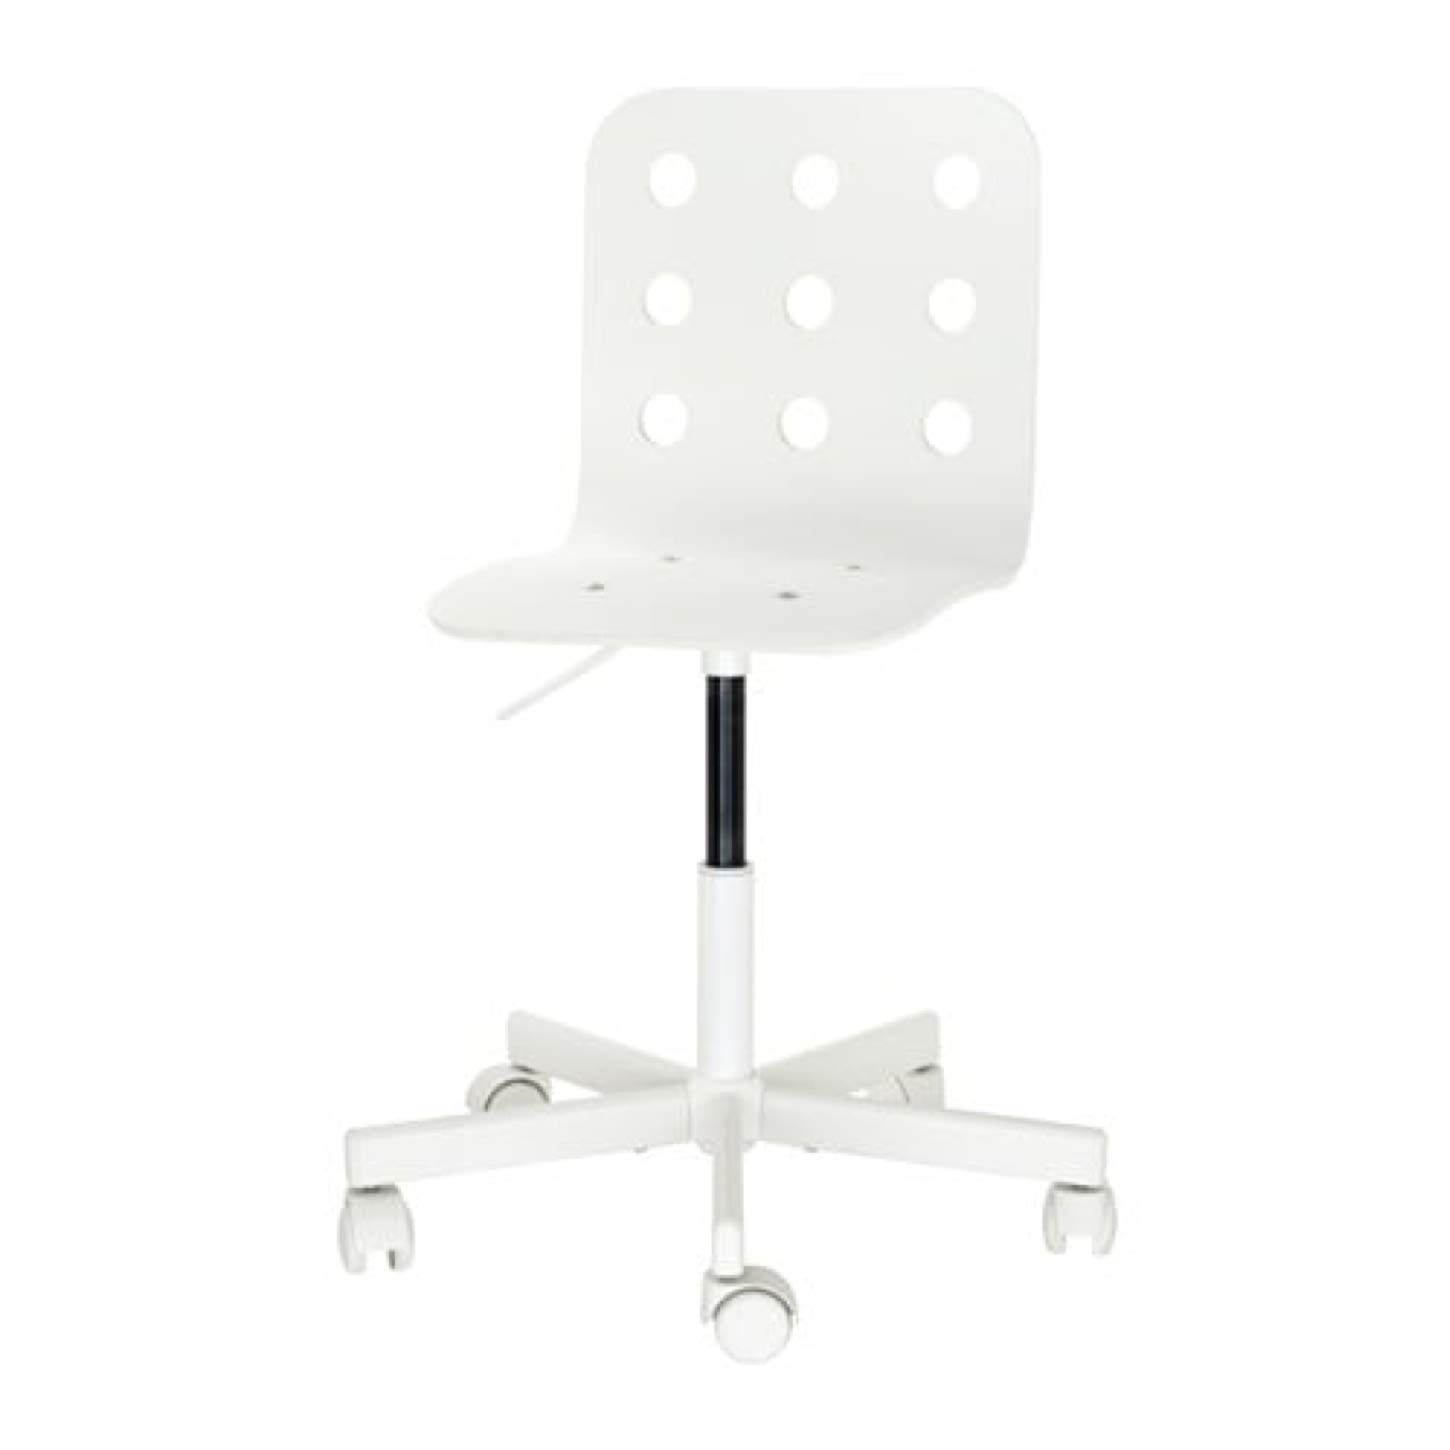 Amazon.com: IKEA Jules Childu0027s Desk Chair White 392.077.16: Home U0026 Kitchen